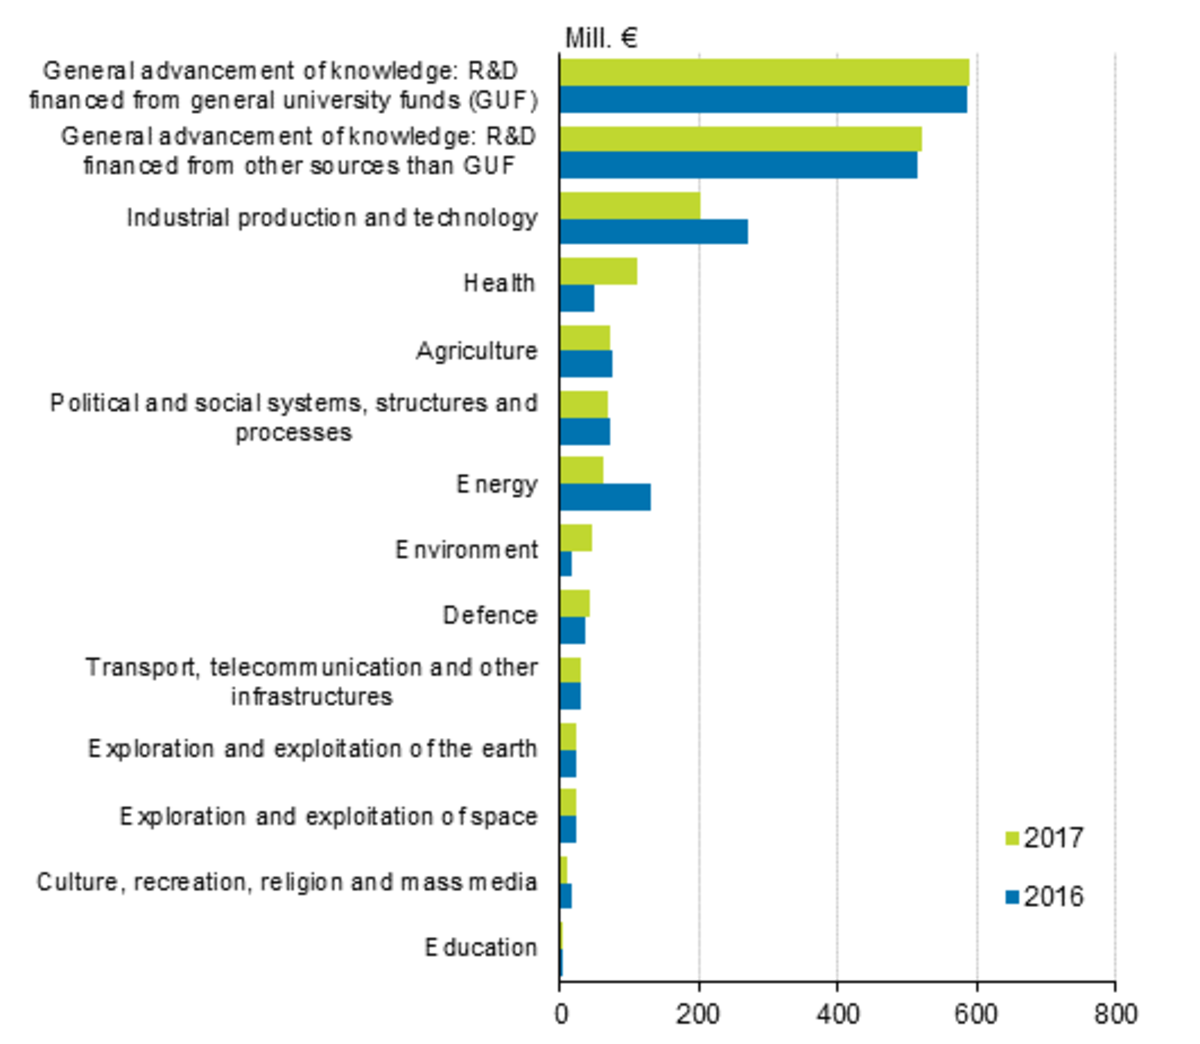 Government R&D funding according to social policy objective category